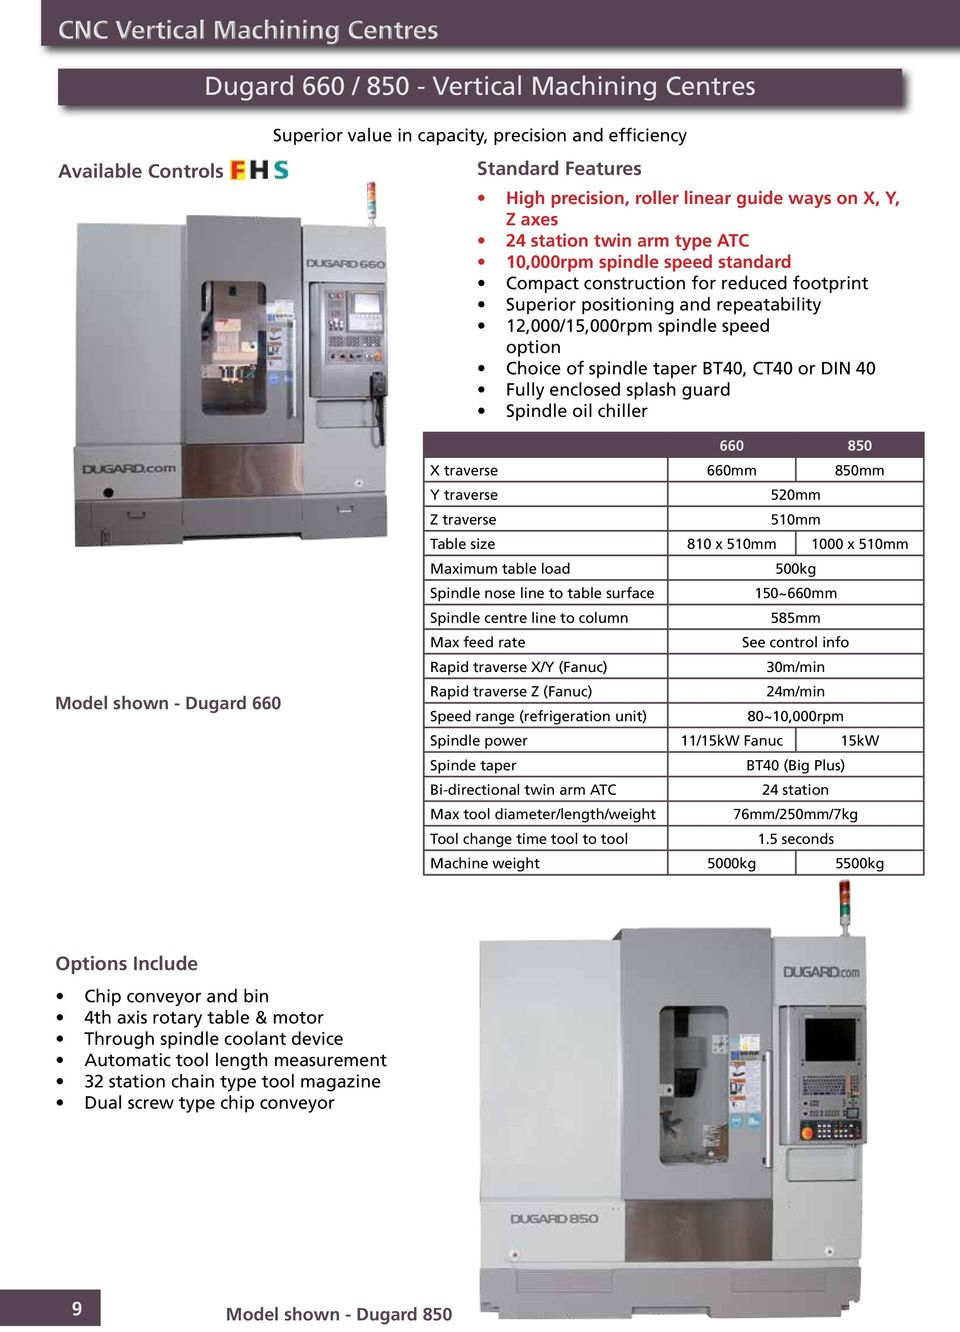 DUGARD  Machine Tools Since The Dugard Range of High Quality